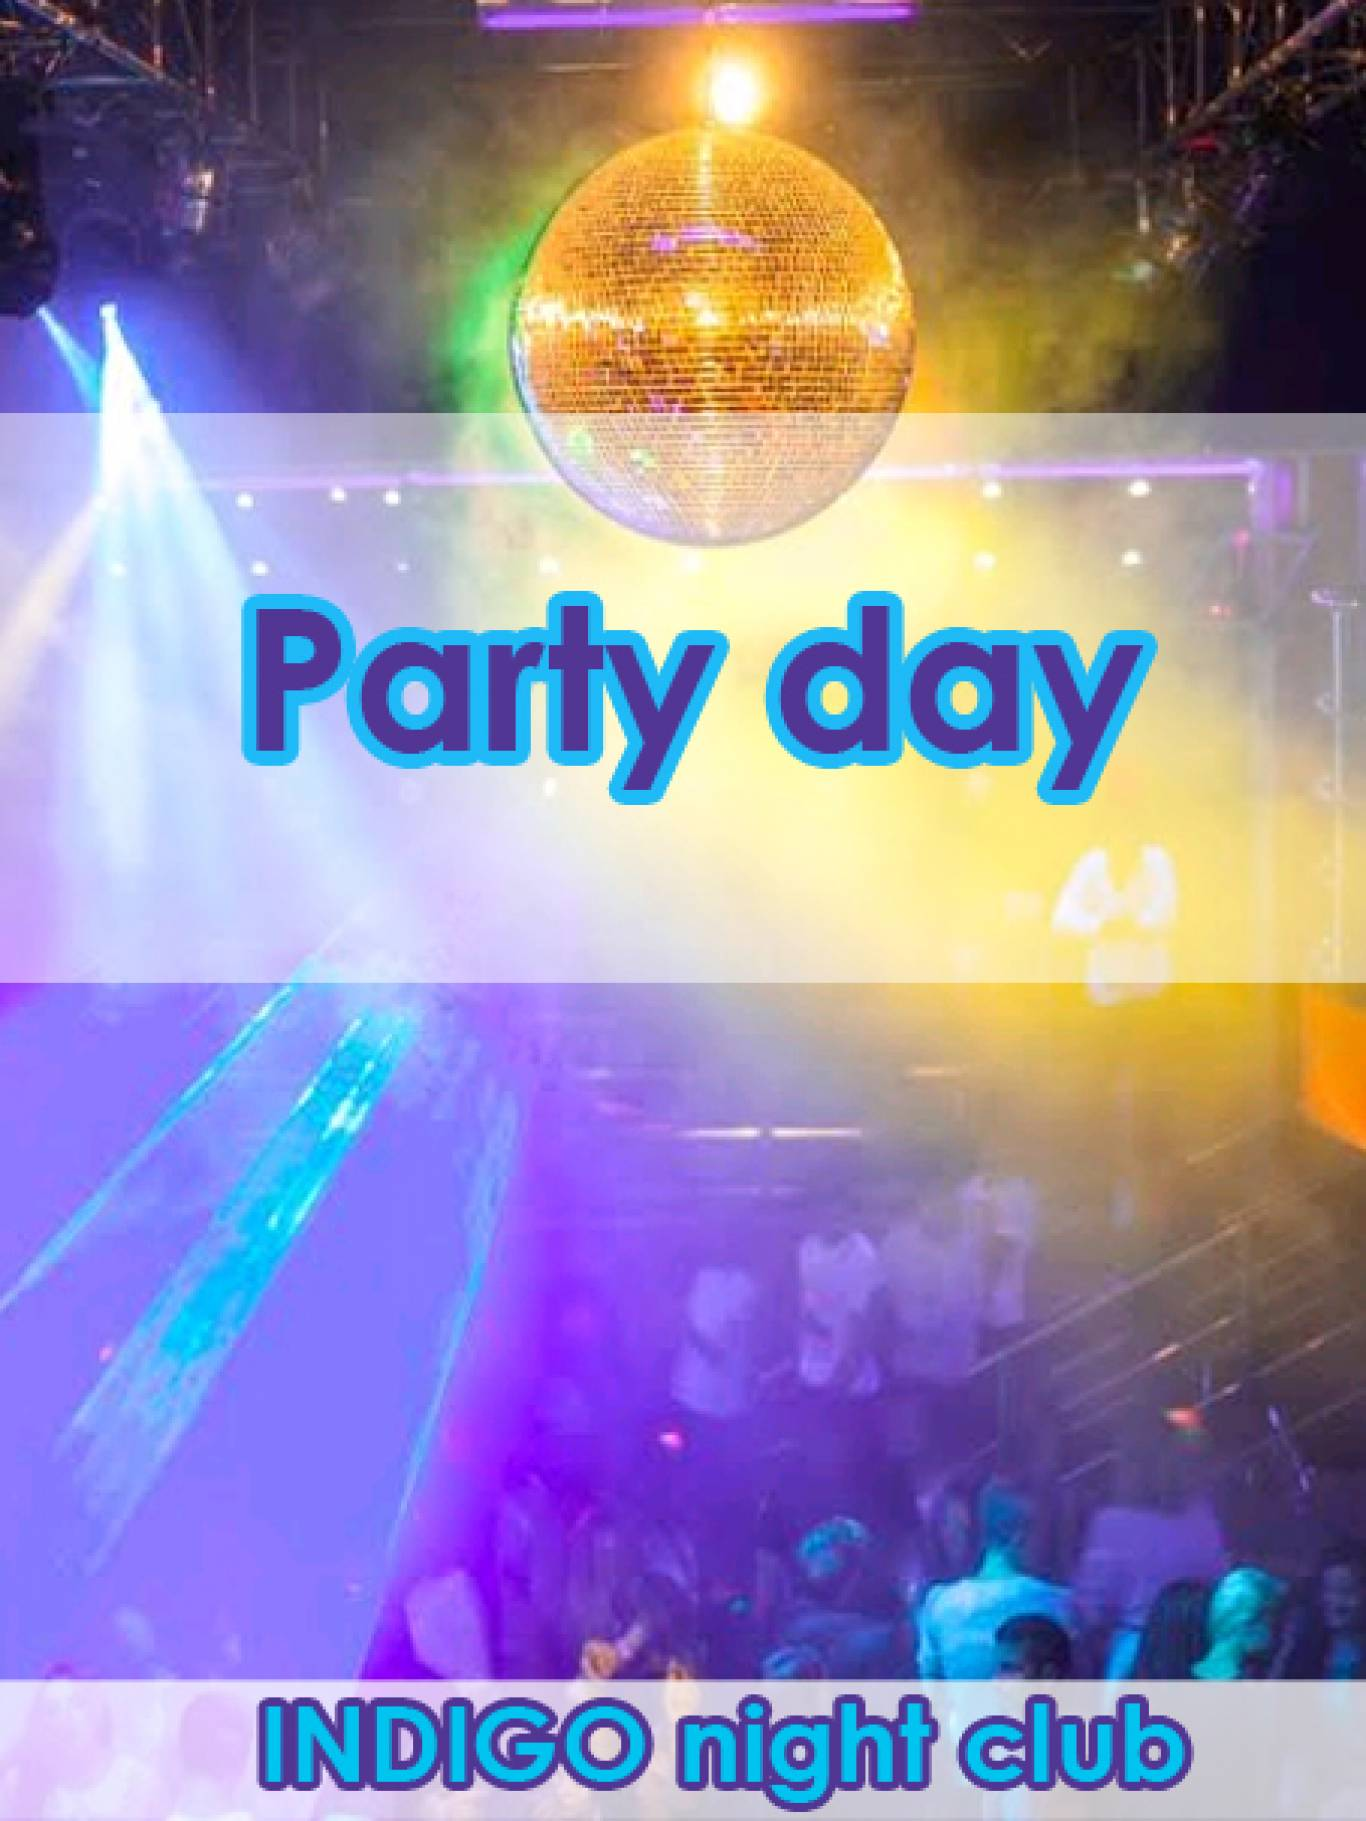 Party day в INDIGO night club